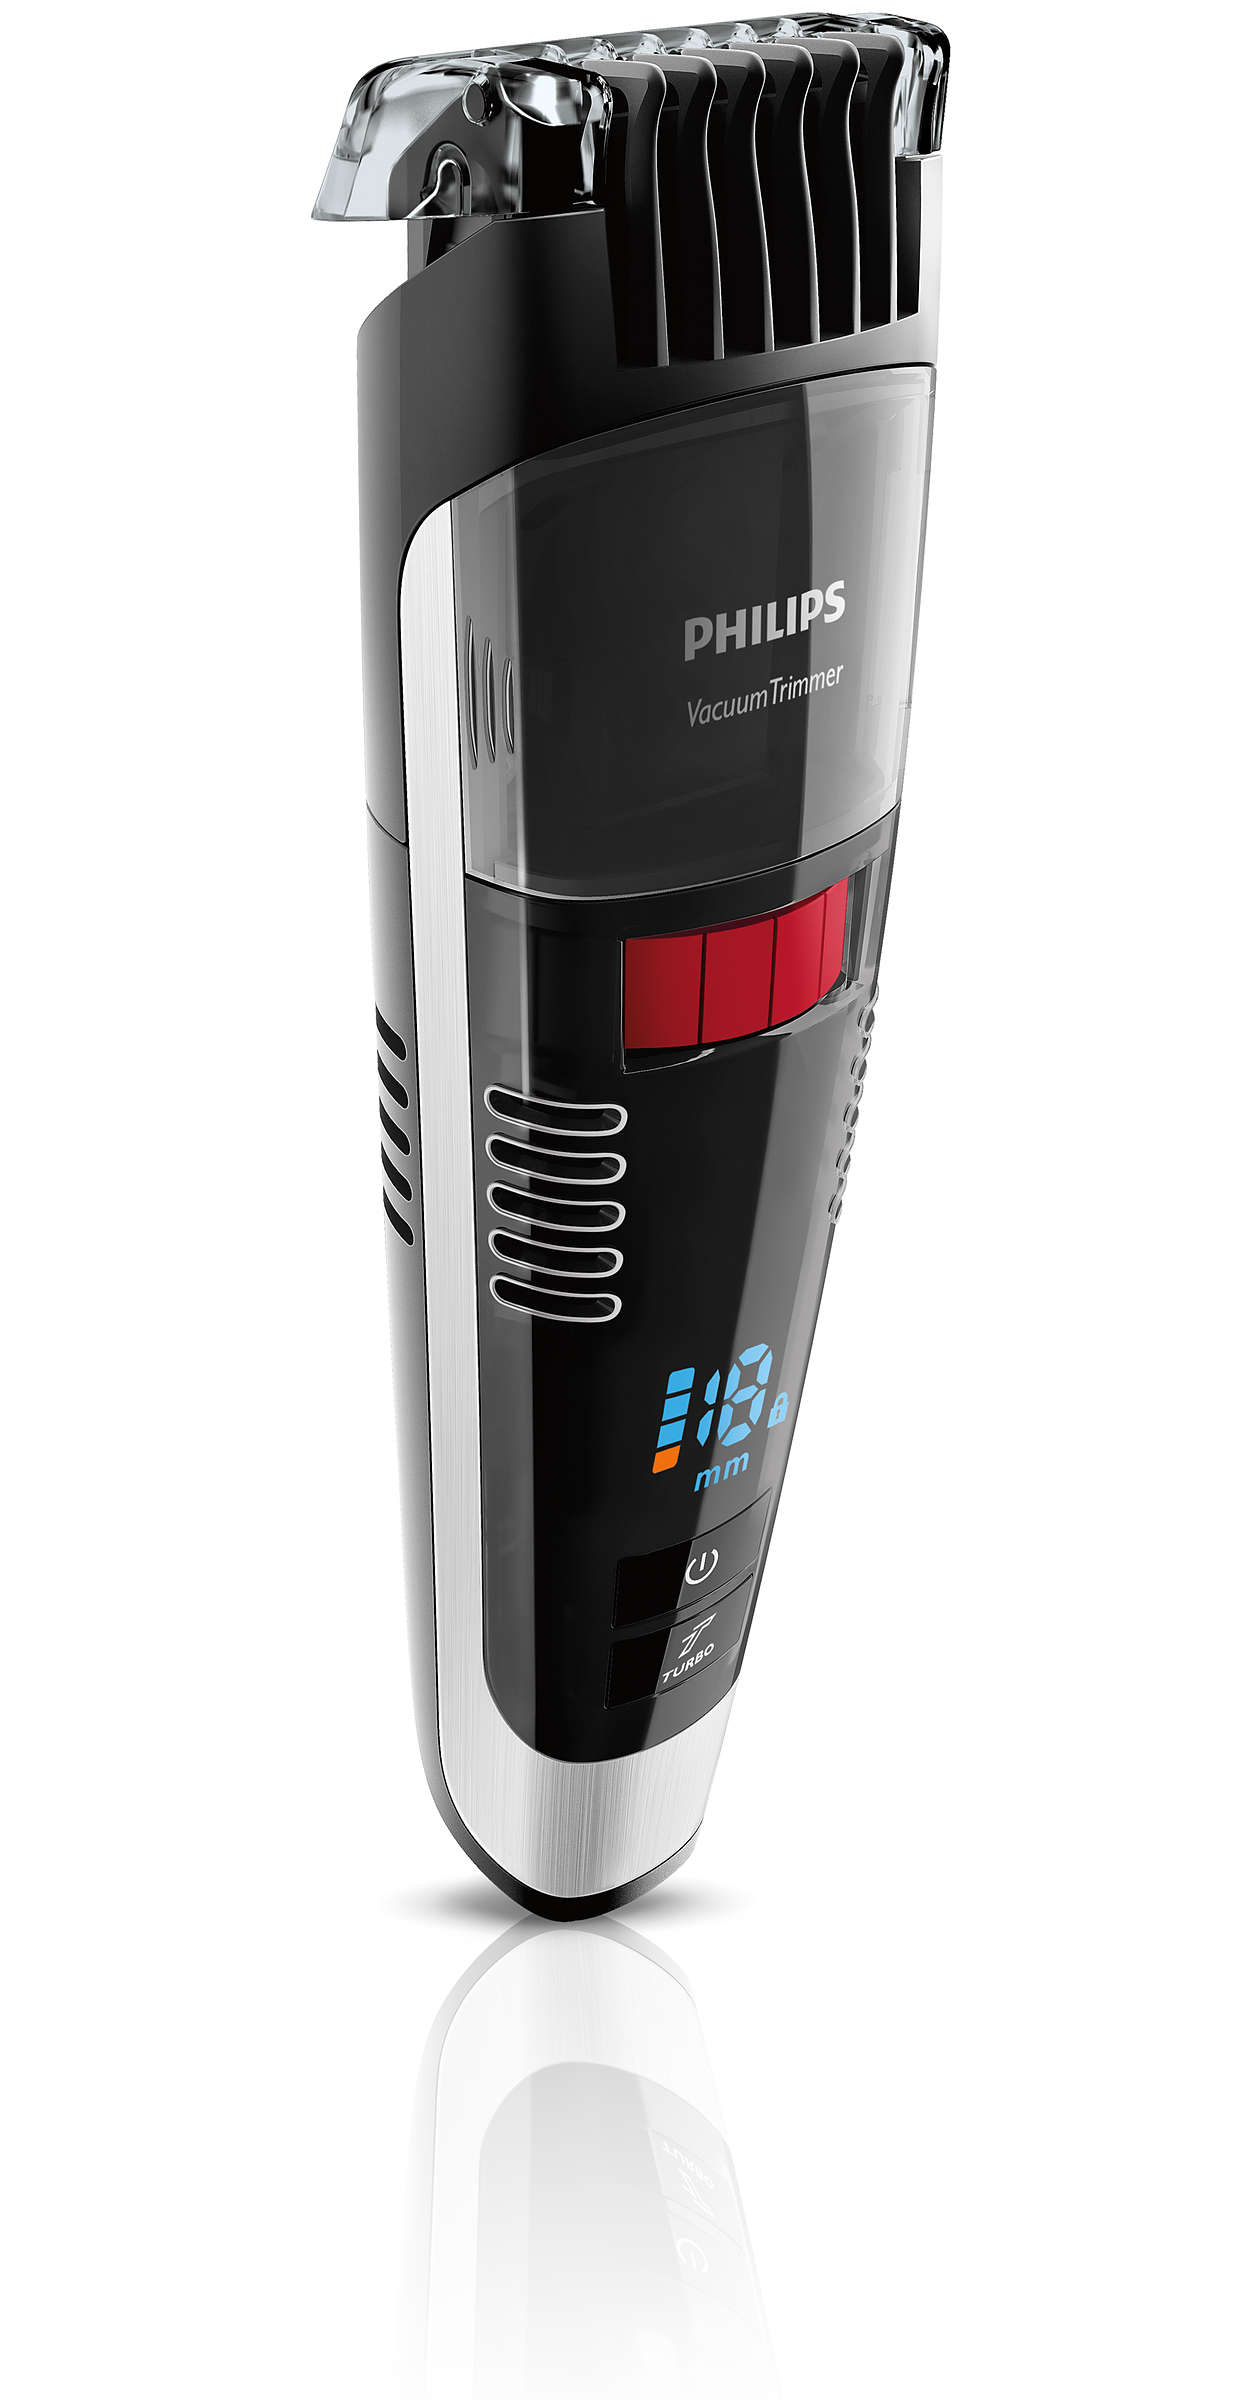 beardtrimmer series 7000 vacuum stubble and beard trimmer bt7085 32 philips. Black Bedroom Furniture Sets. Home Design Ideas